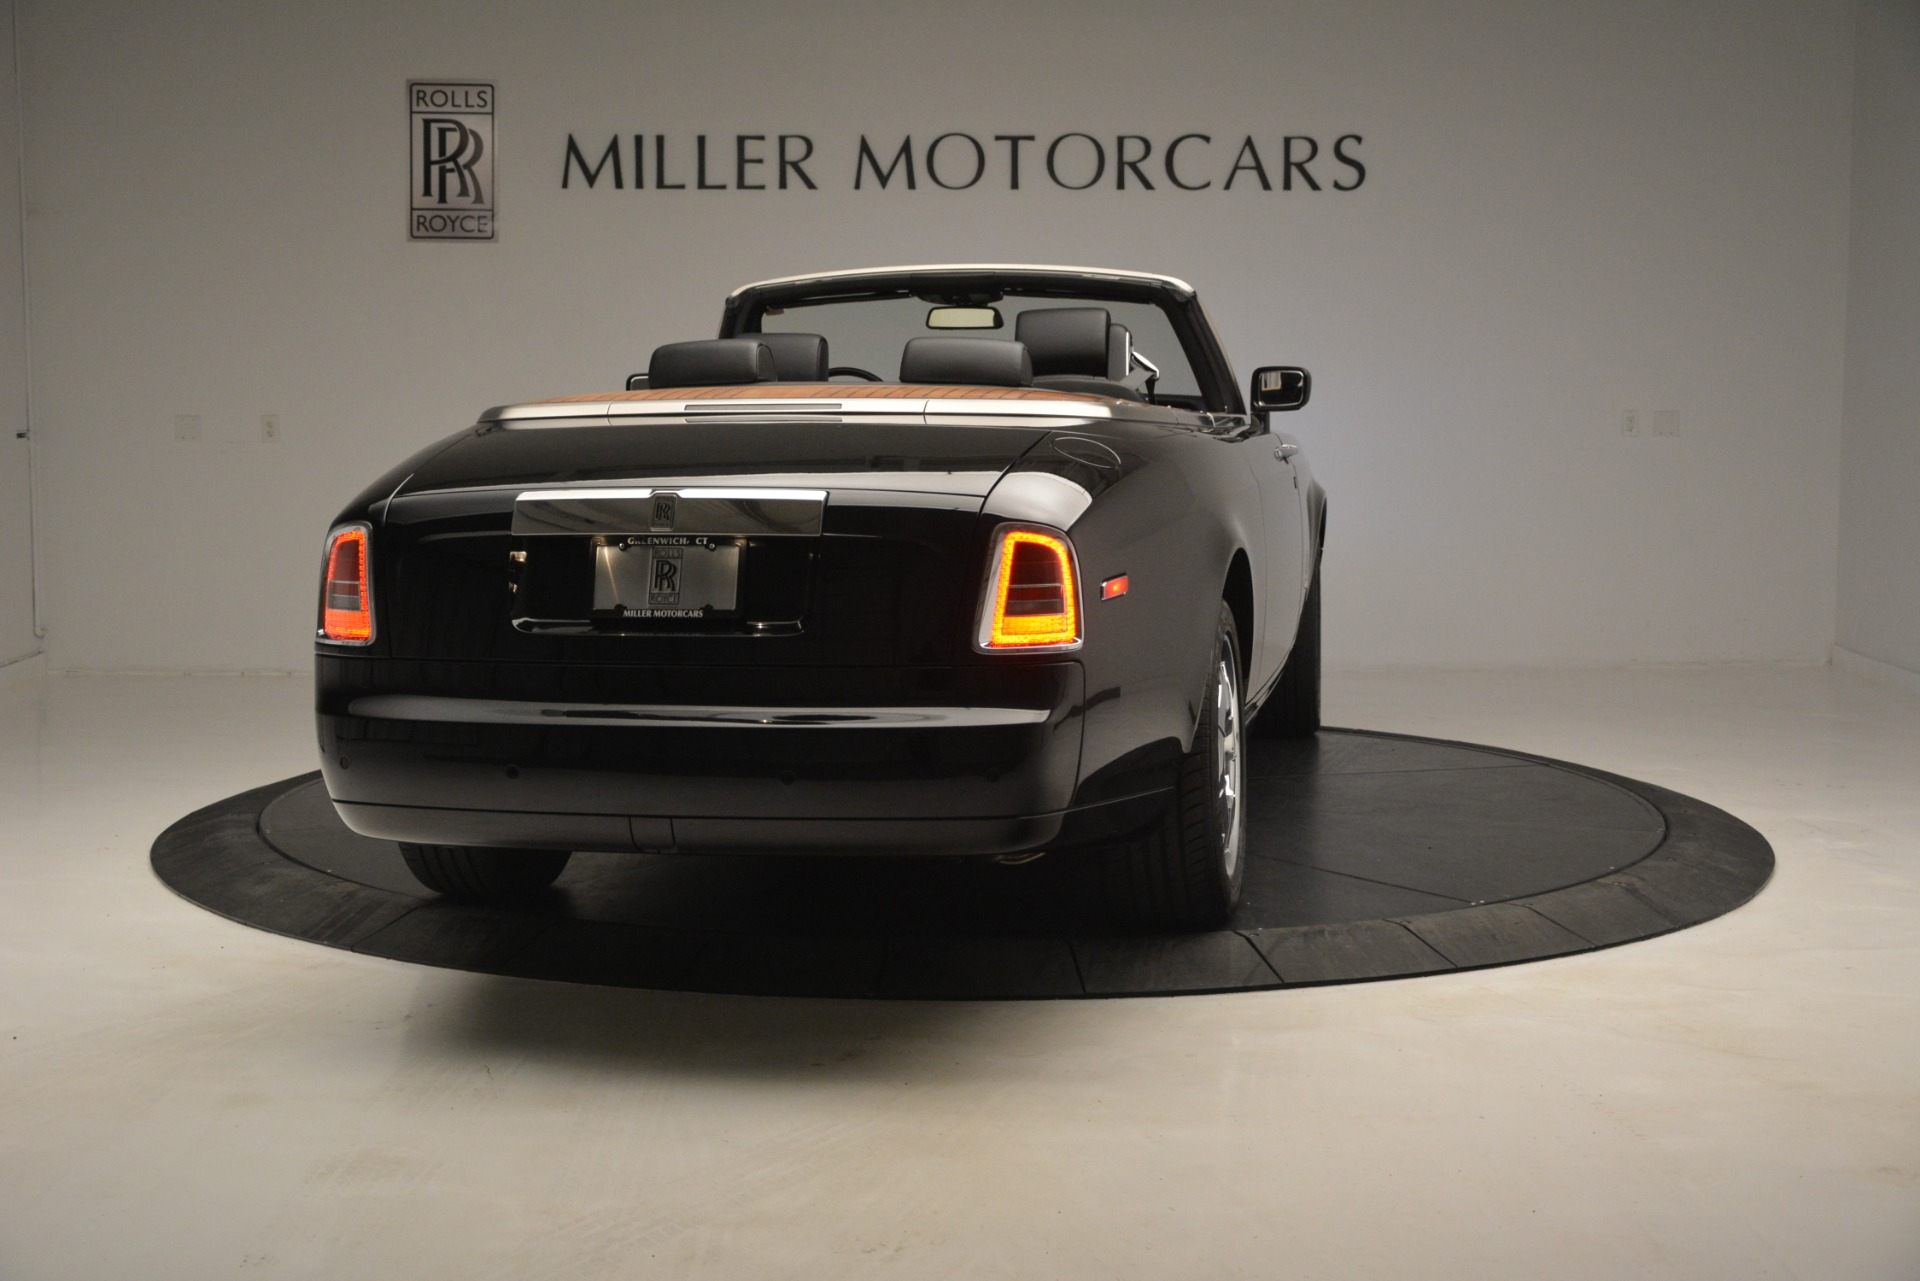 Used 2008 Rolls-Royce Phantom Drophead Coupe  For Sale In Greenwich, CT 3000_p10